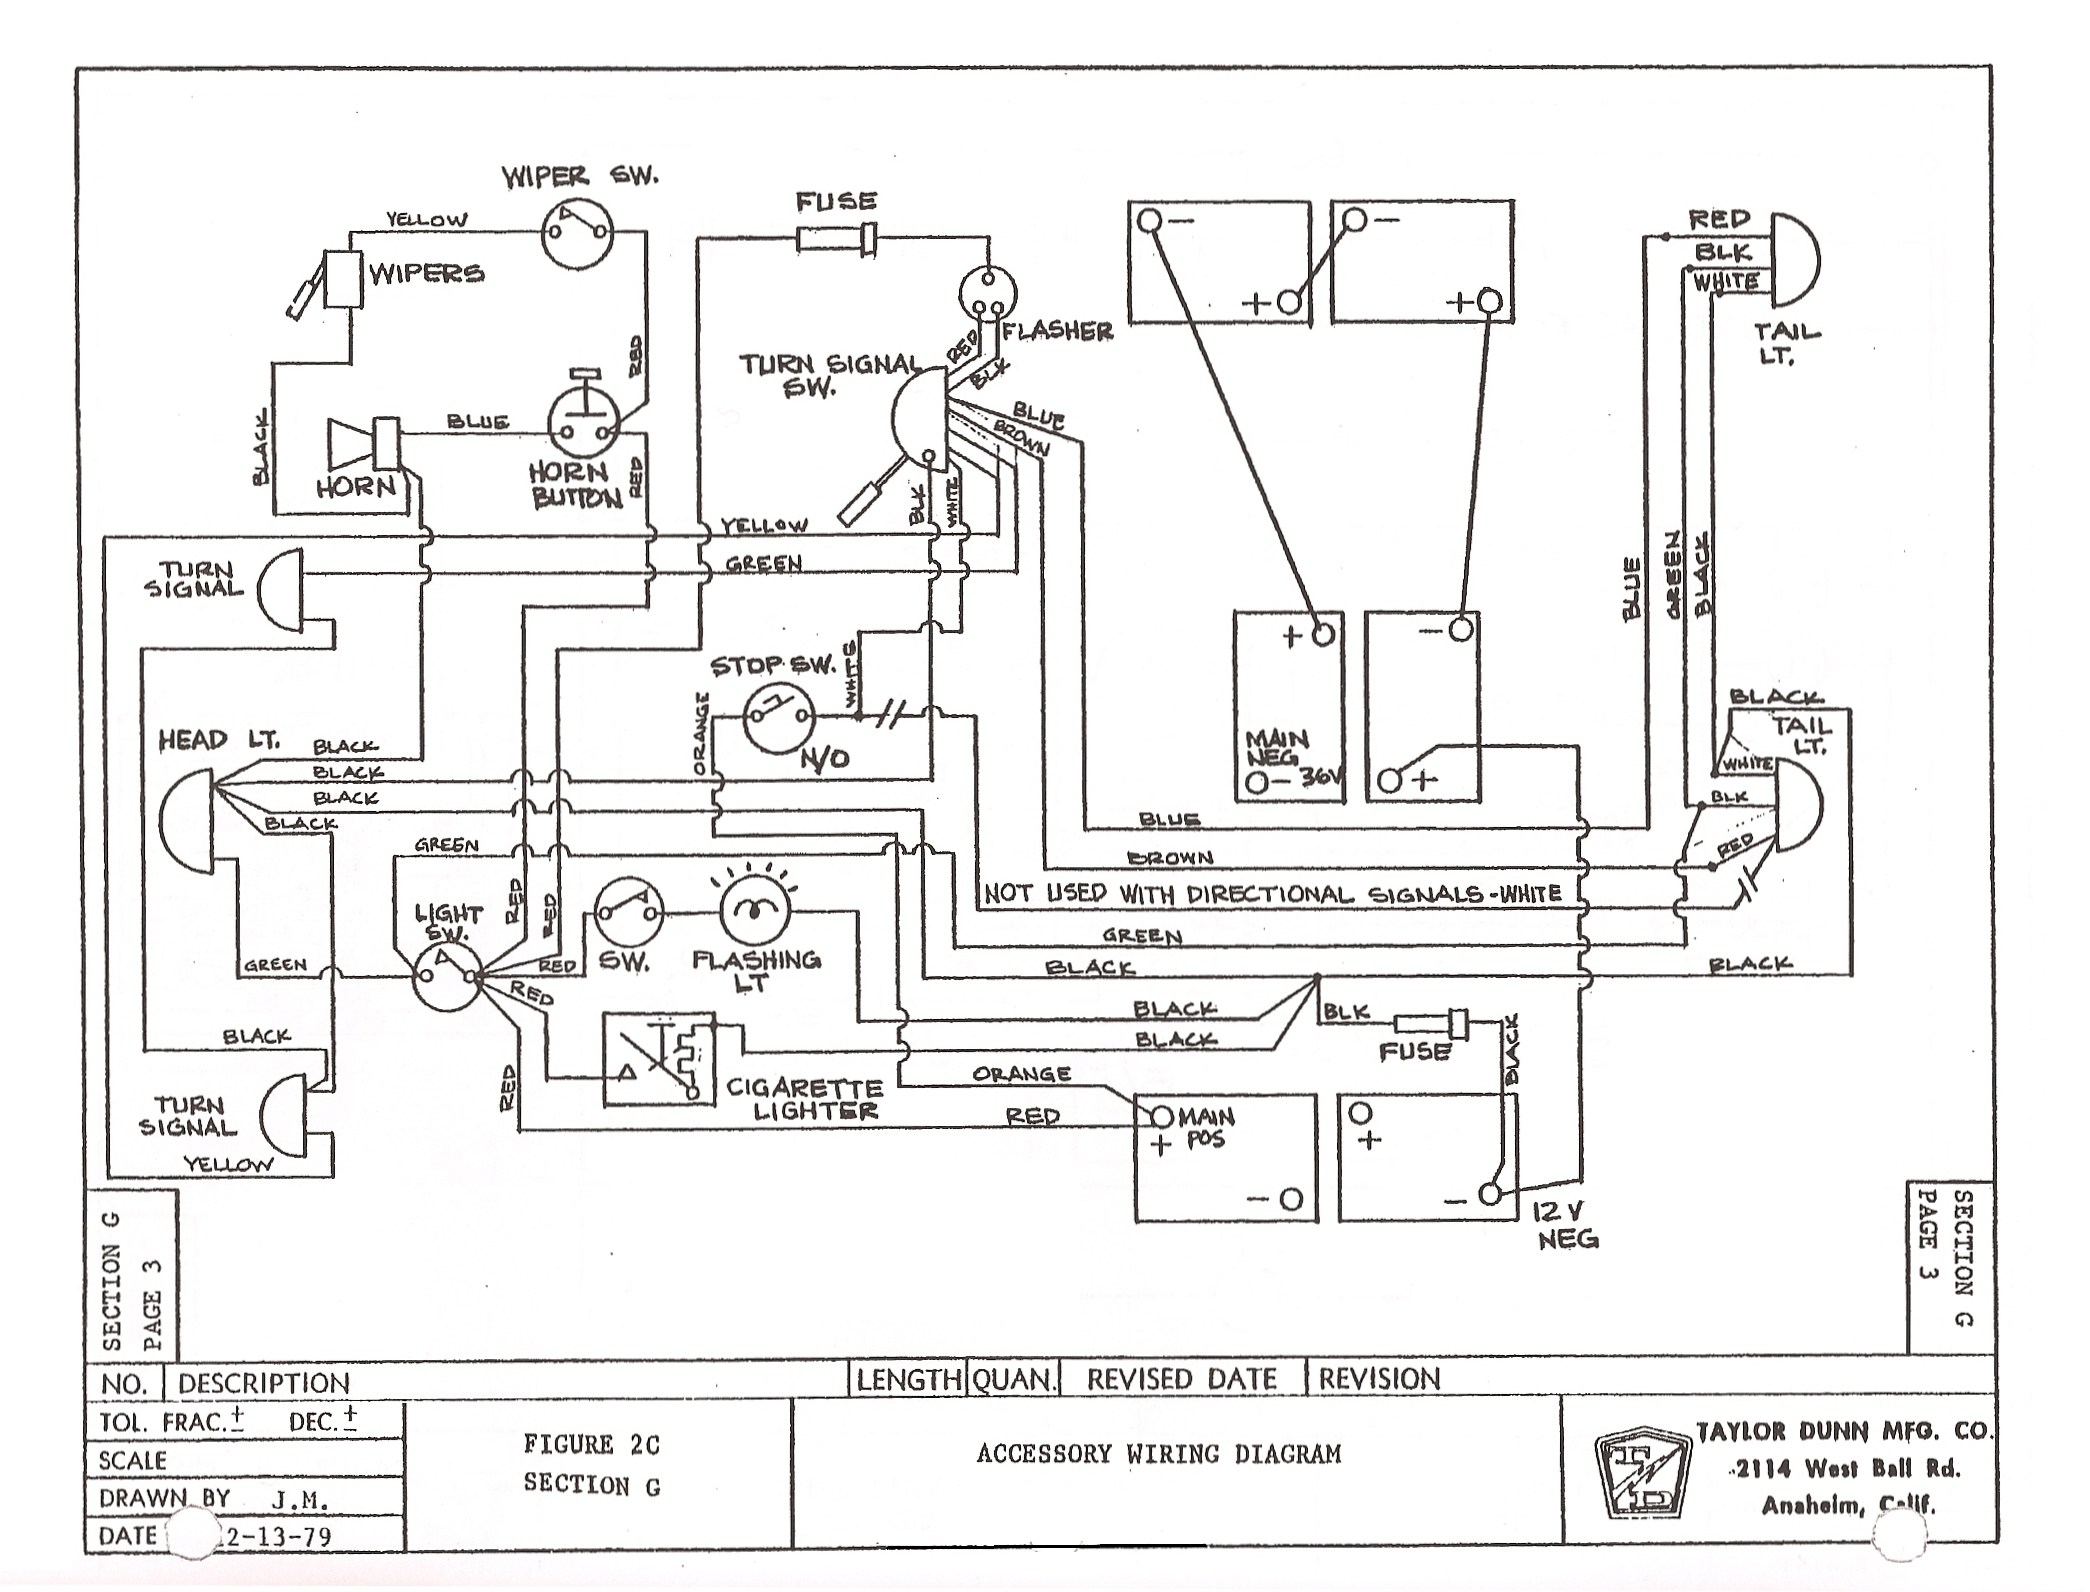 taylor dunn 36v battery wiring diagram wiring imagestaylor dunn 36v battery wiring diagram